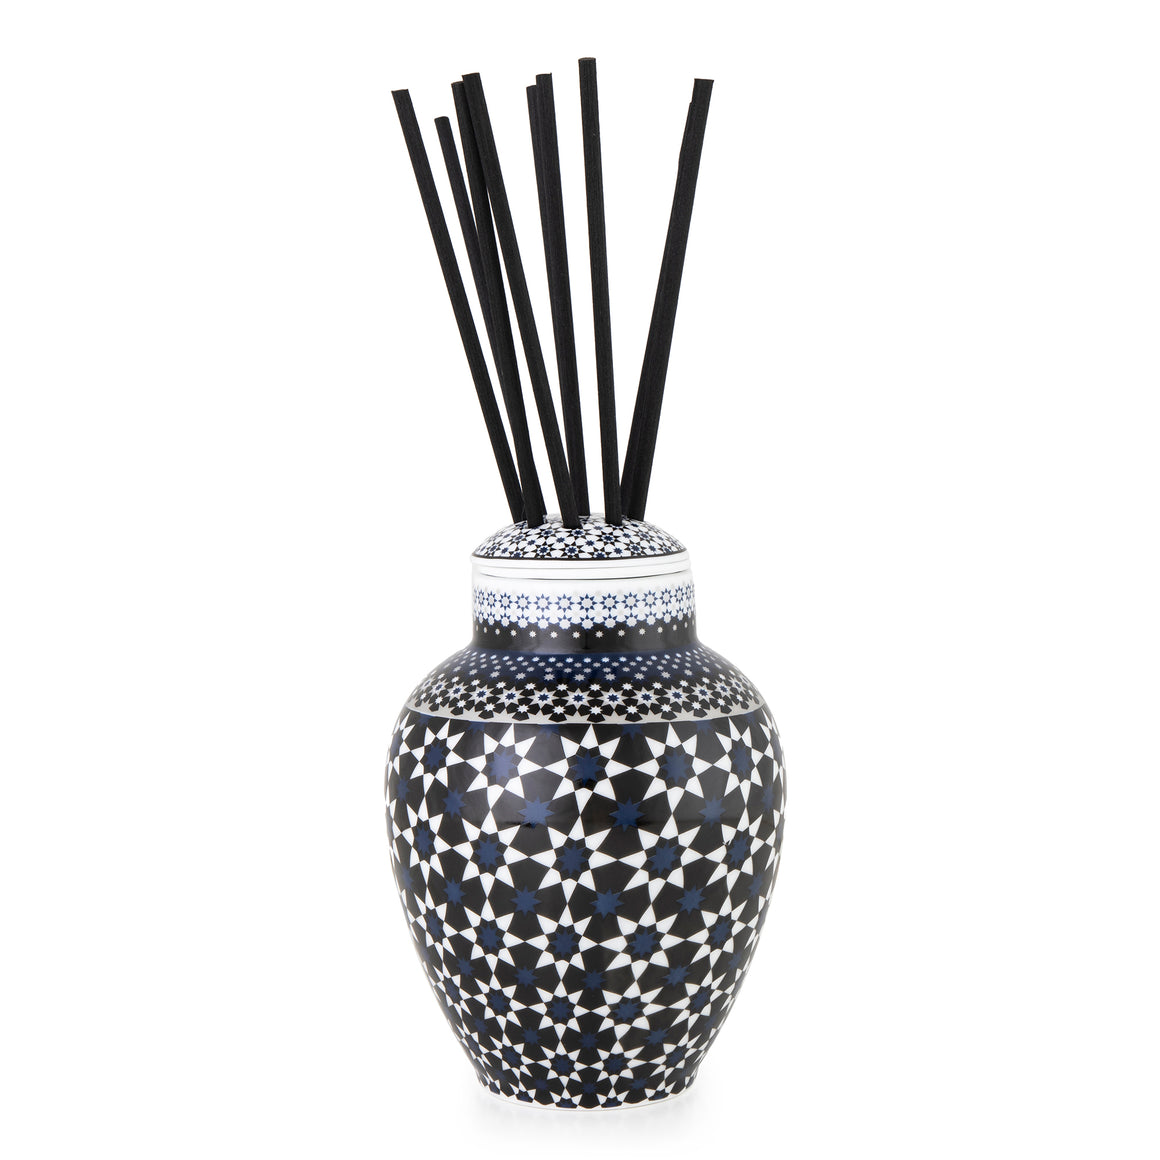 Geometric Pattern Middle Eastern Design black and white porcelain Fragrance Diffuser Vase The Habibti Collective